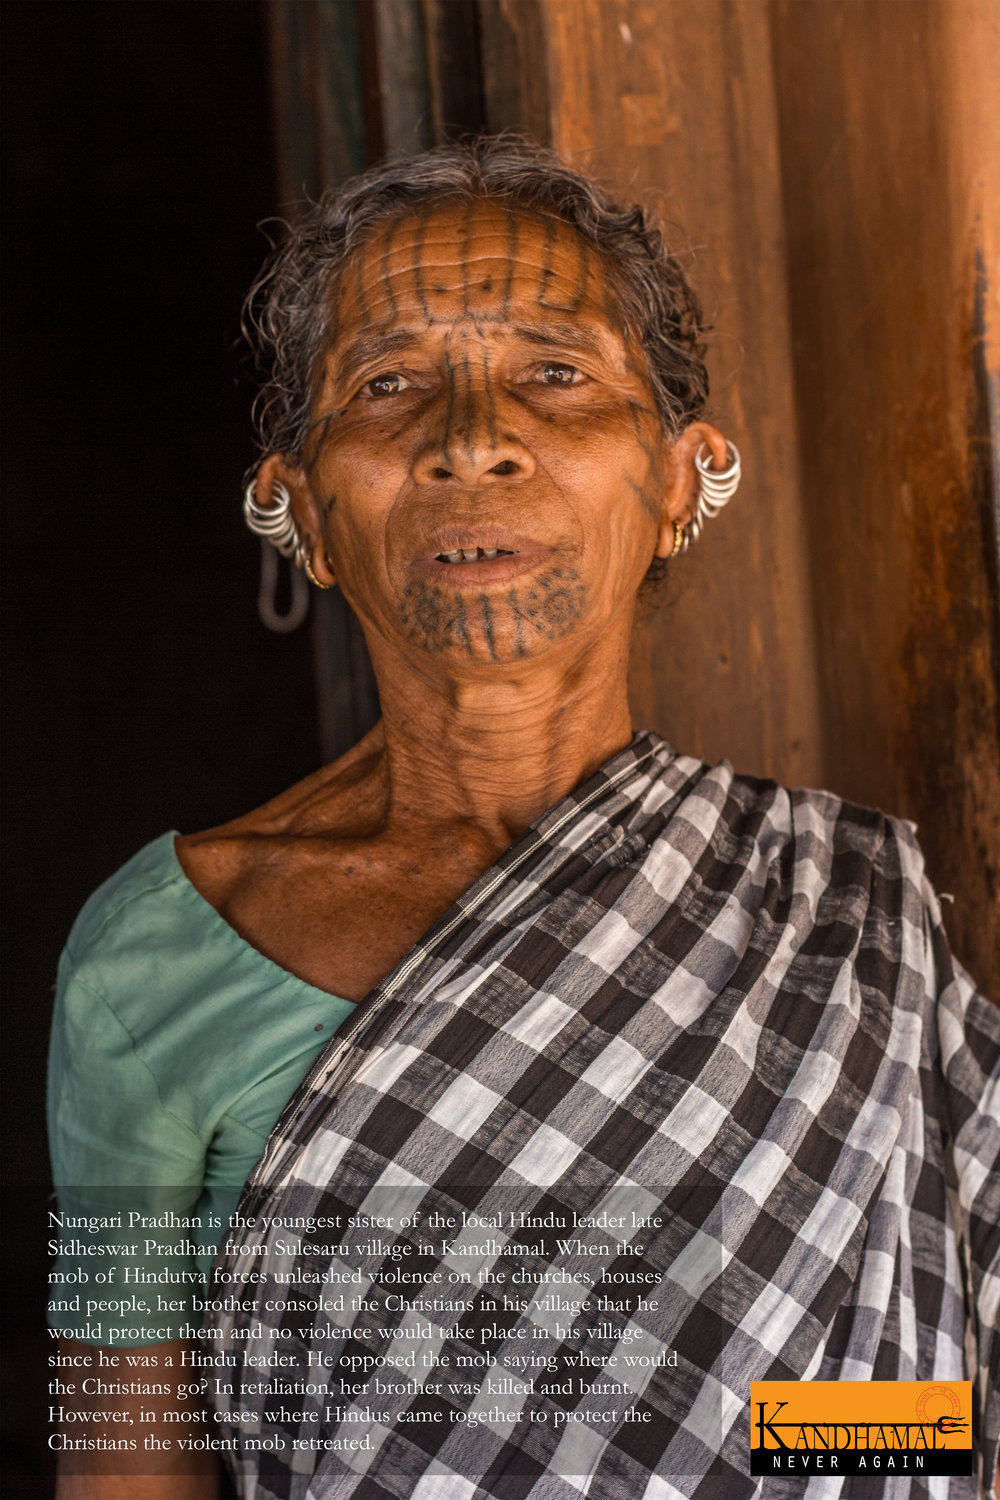 A photo exhibit of Kandhamal survivors was displayed in Delhi in August 2018 for a 10-year anniversary event for activists and survivors to discuss how to proceed with their legal cases. Photo by Joe Athialy.